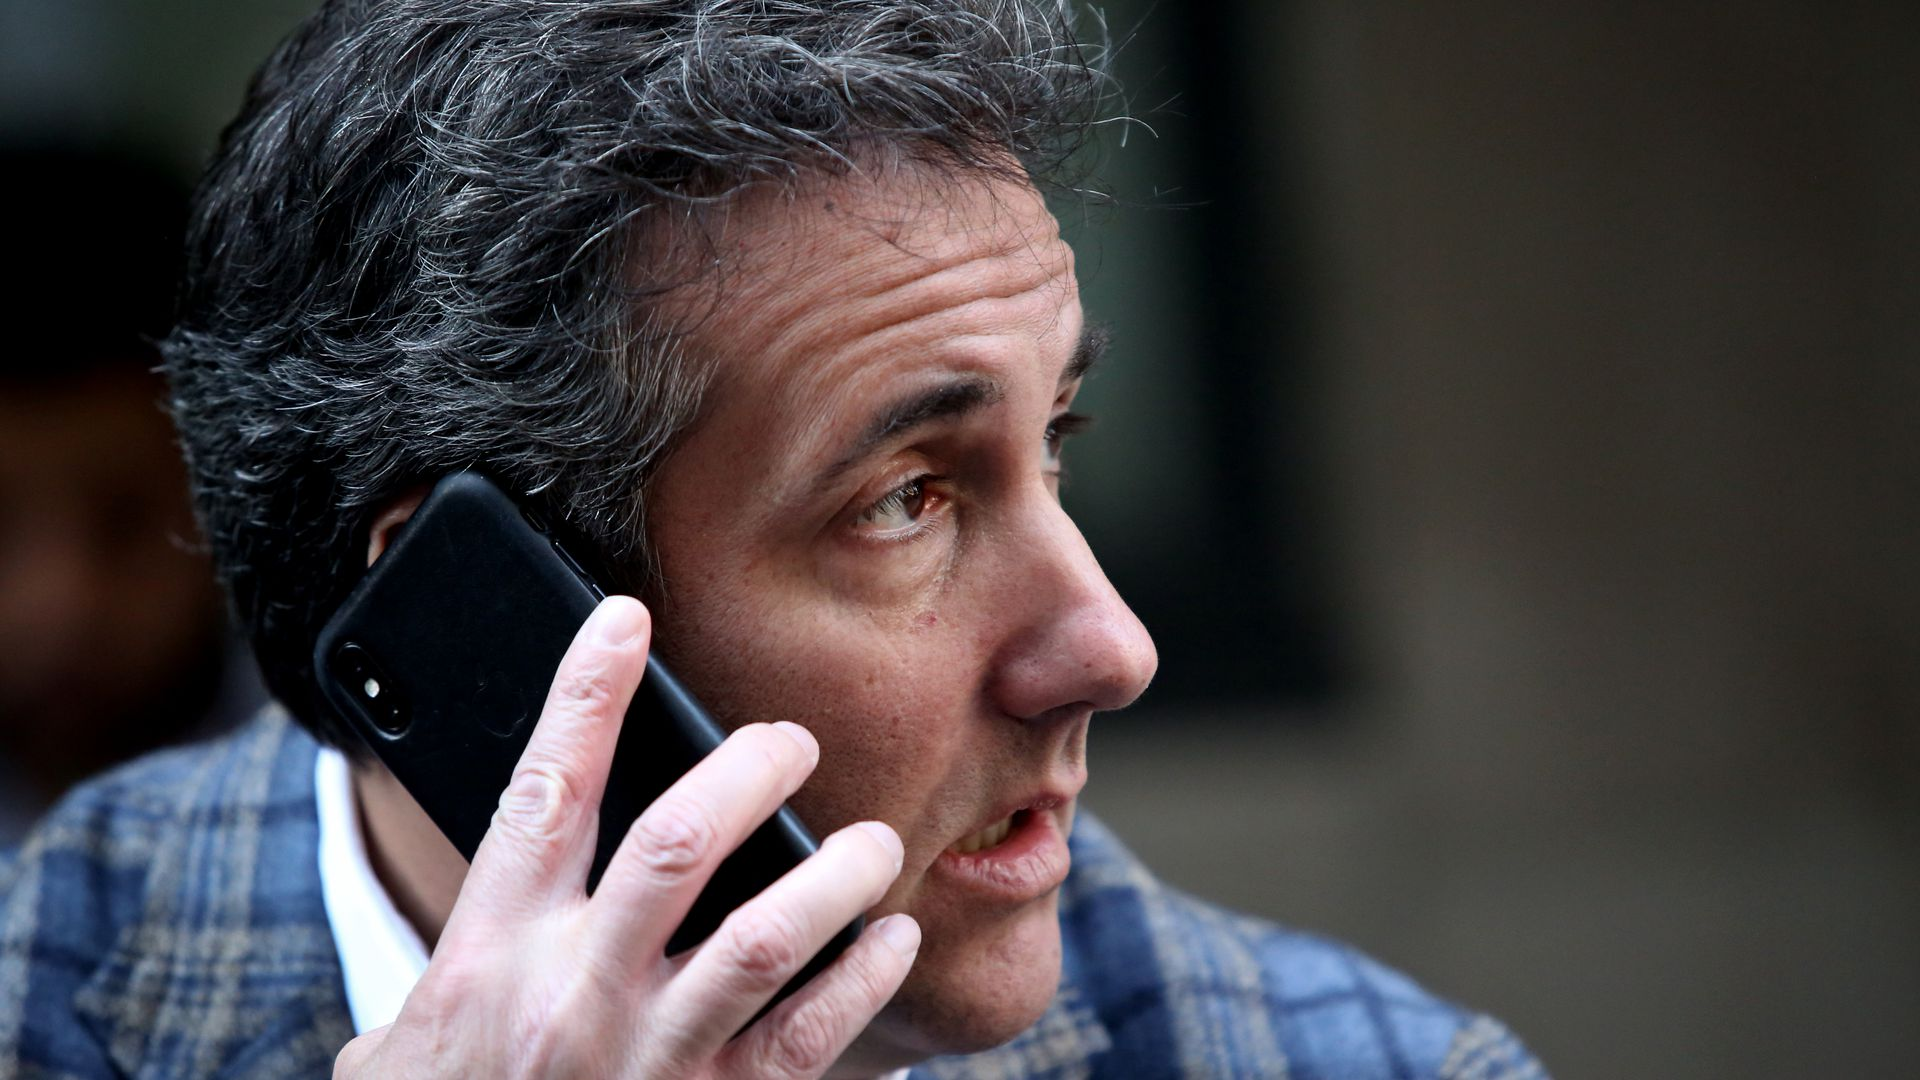 Michael Cohen holds a phone to his ear